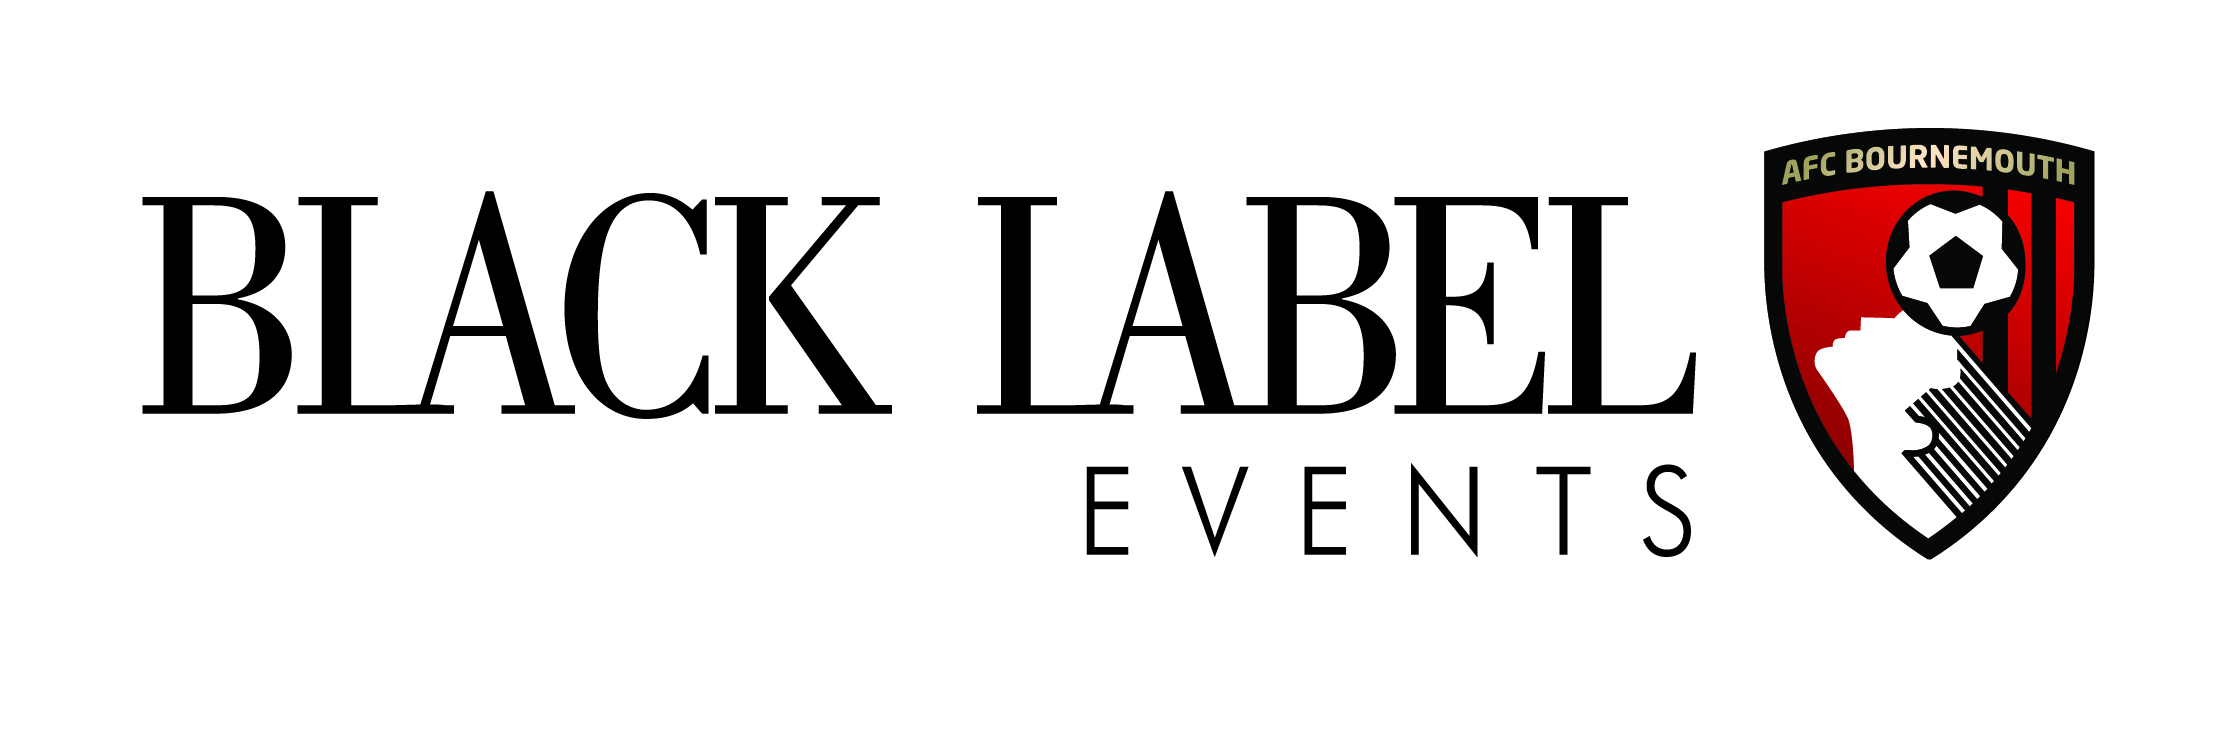 Black Label Events Logo